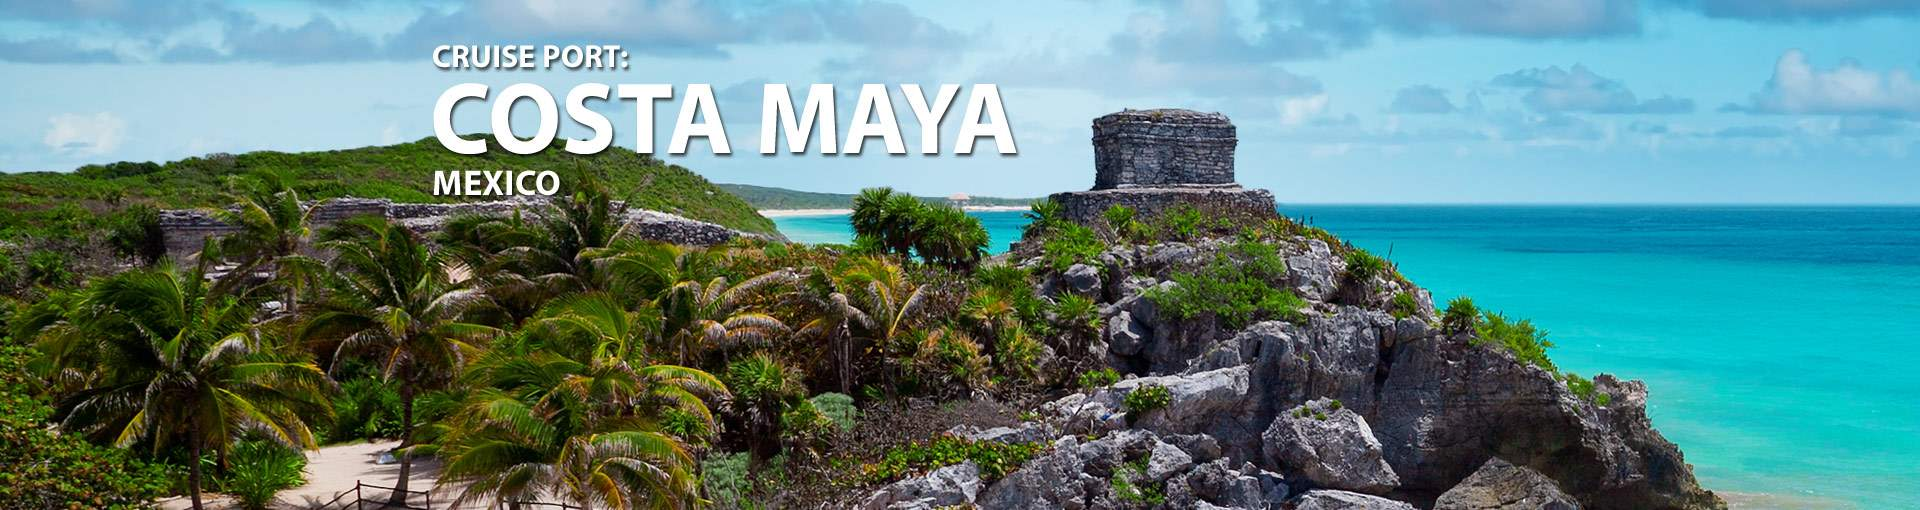 Costa Maya Mexico Cruise Port 2017 And 2018 Cruises To